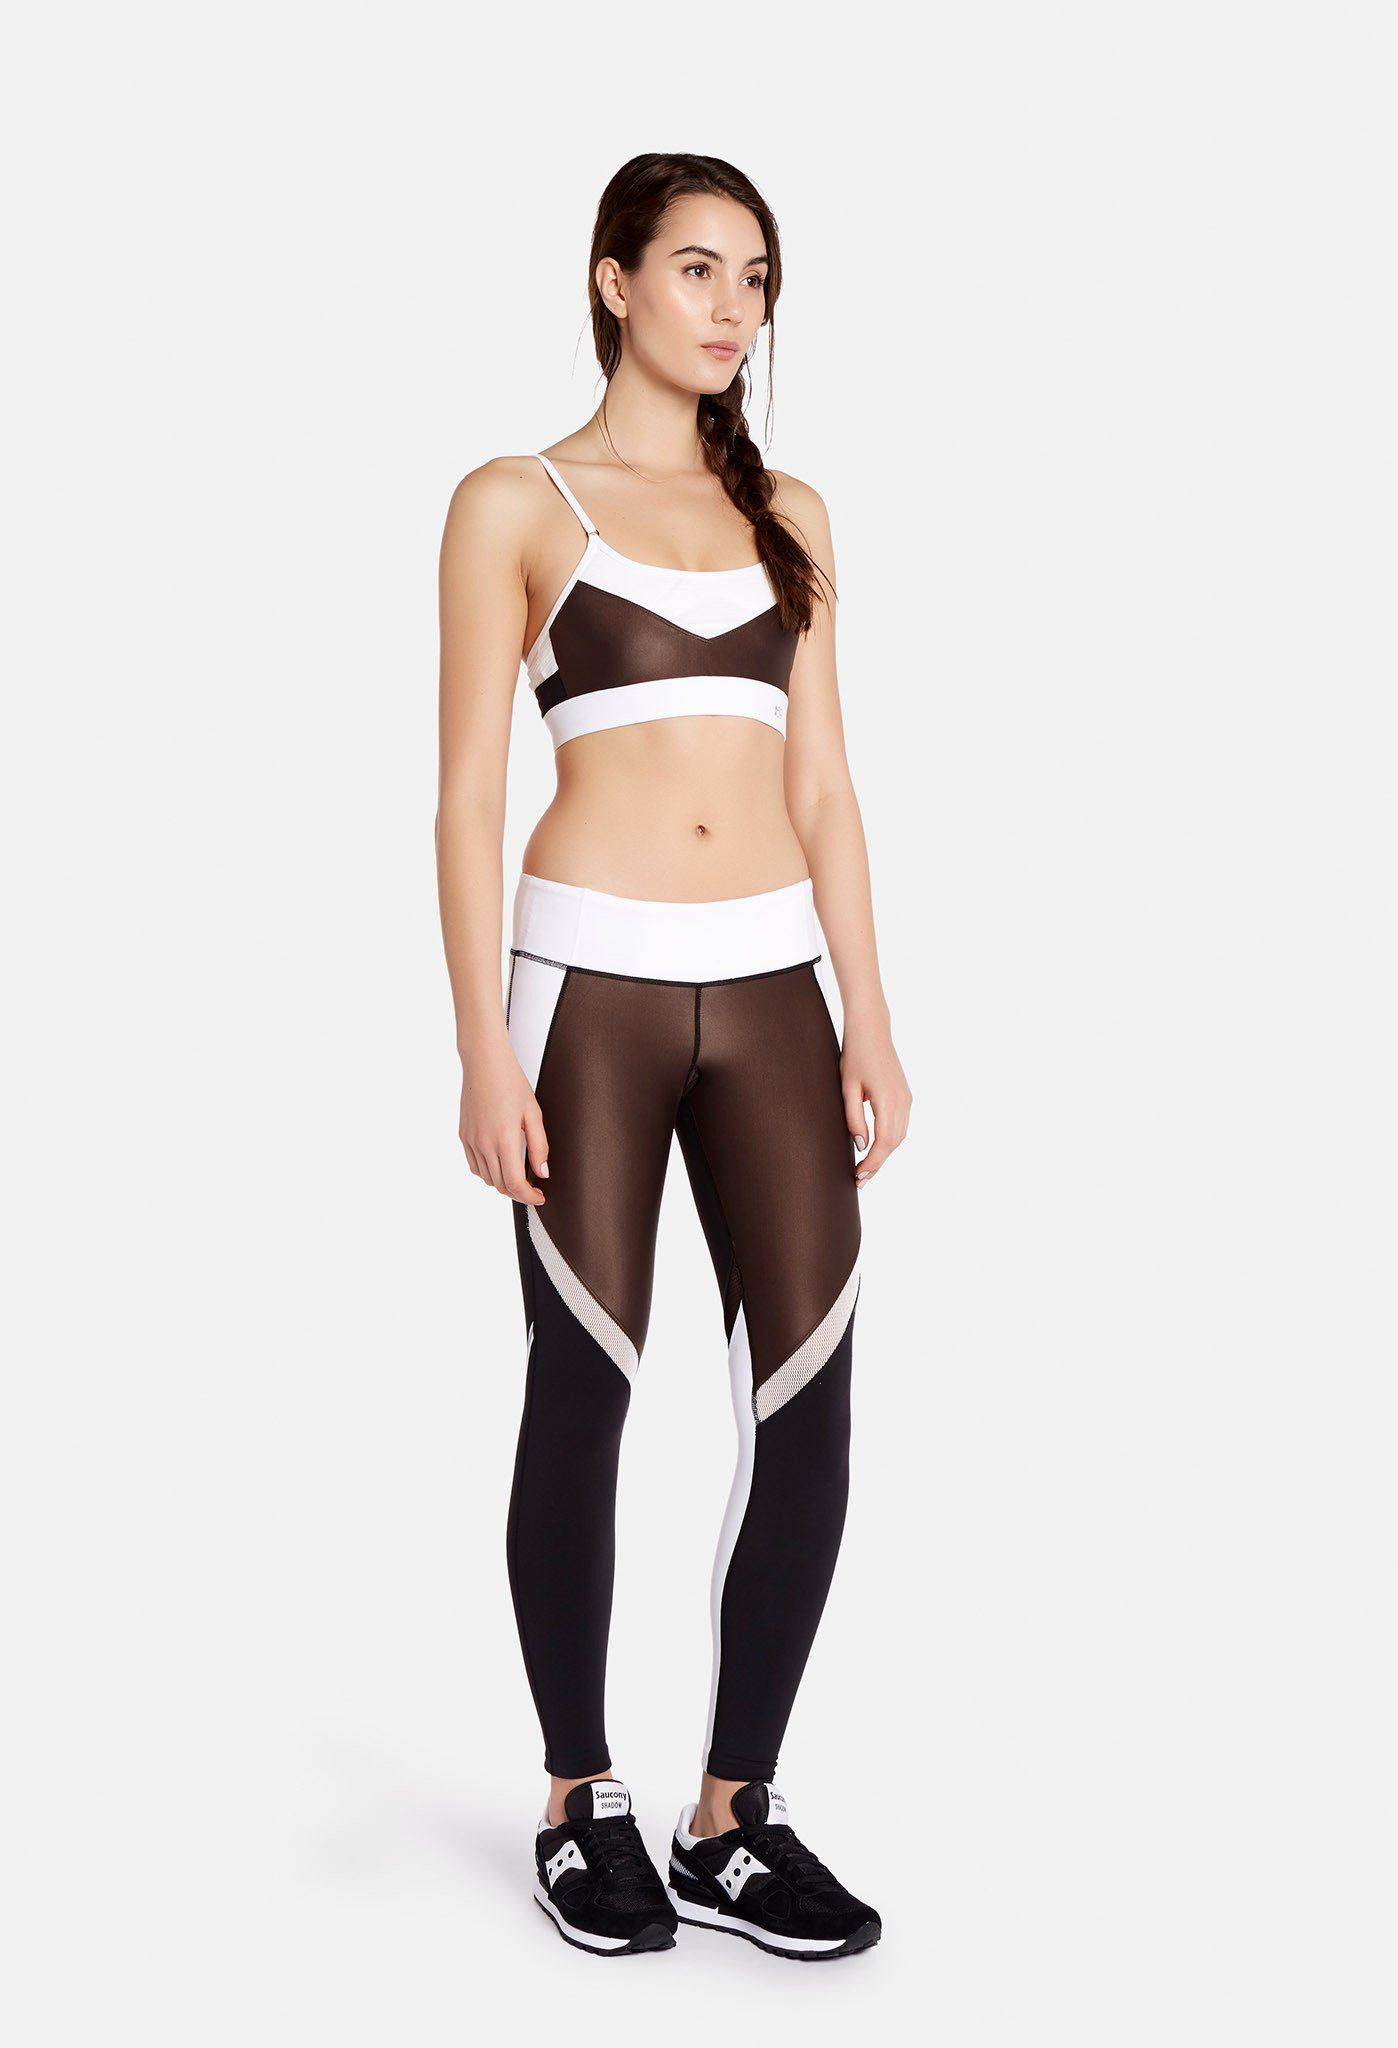 a4b24f68304258 Black, white, and brown, women's tight from with mesh and high gloss  panels. Split59 logo on back on bottom left leg.